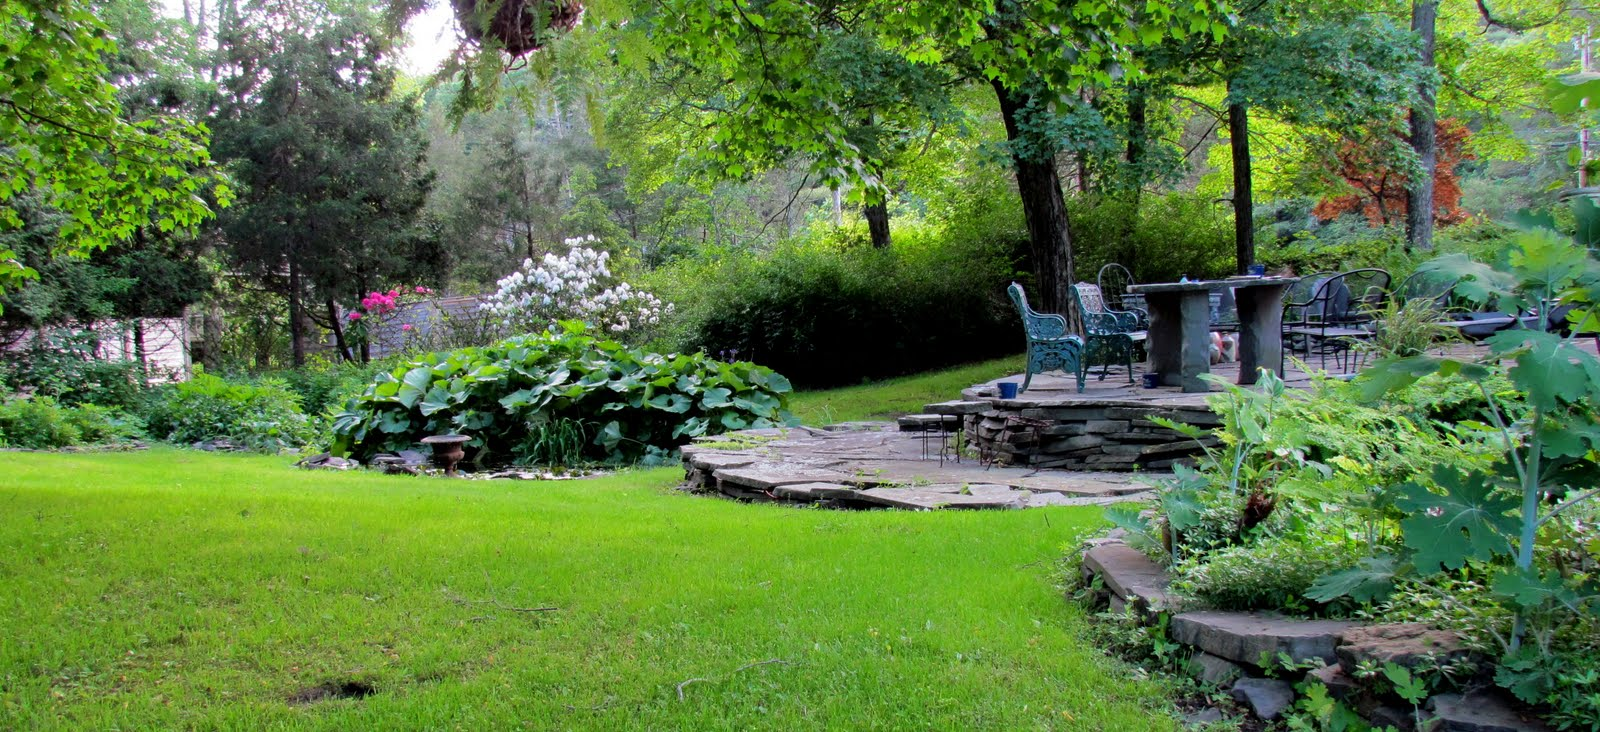 Wonderful But I Will See To It At All Times The Overall Impression Of The Garden Will  Be A Handsome One.